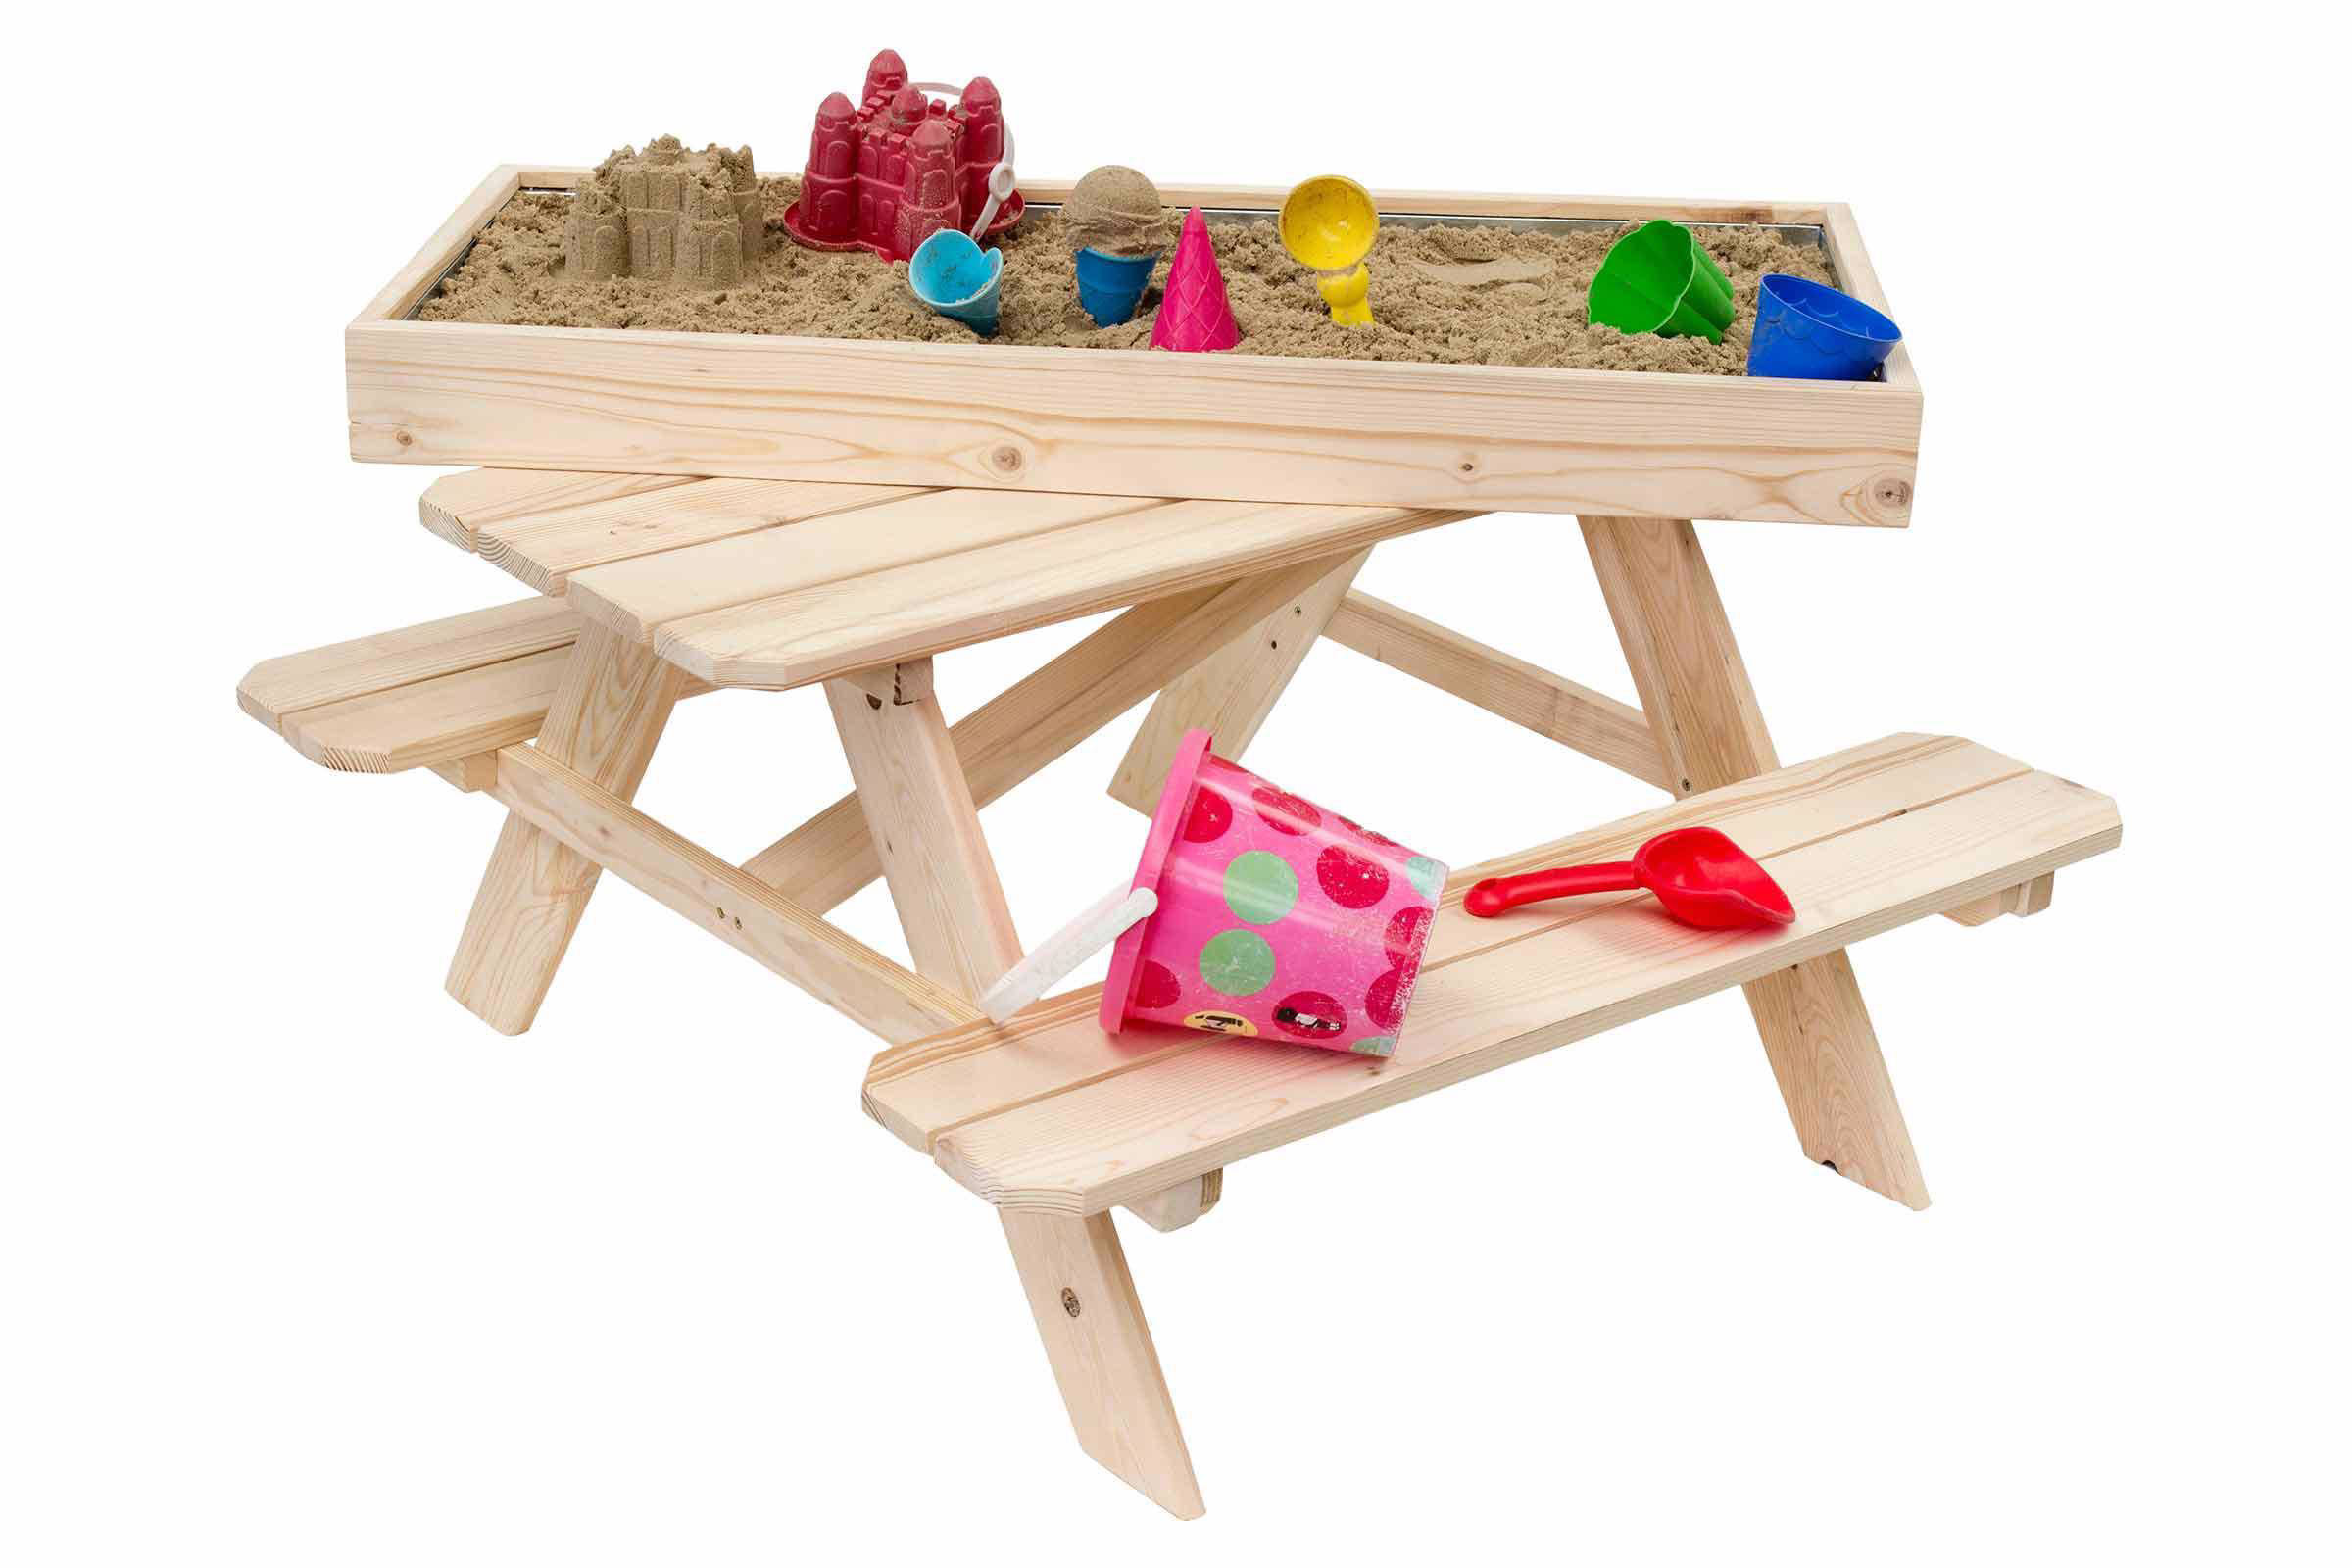 Kinder Picknick Tafel : Outdoor life products outdoor life product kinderpicknick tafel